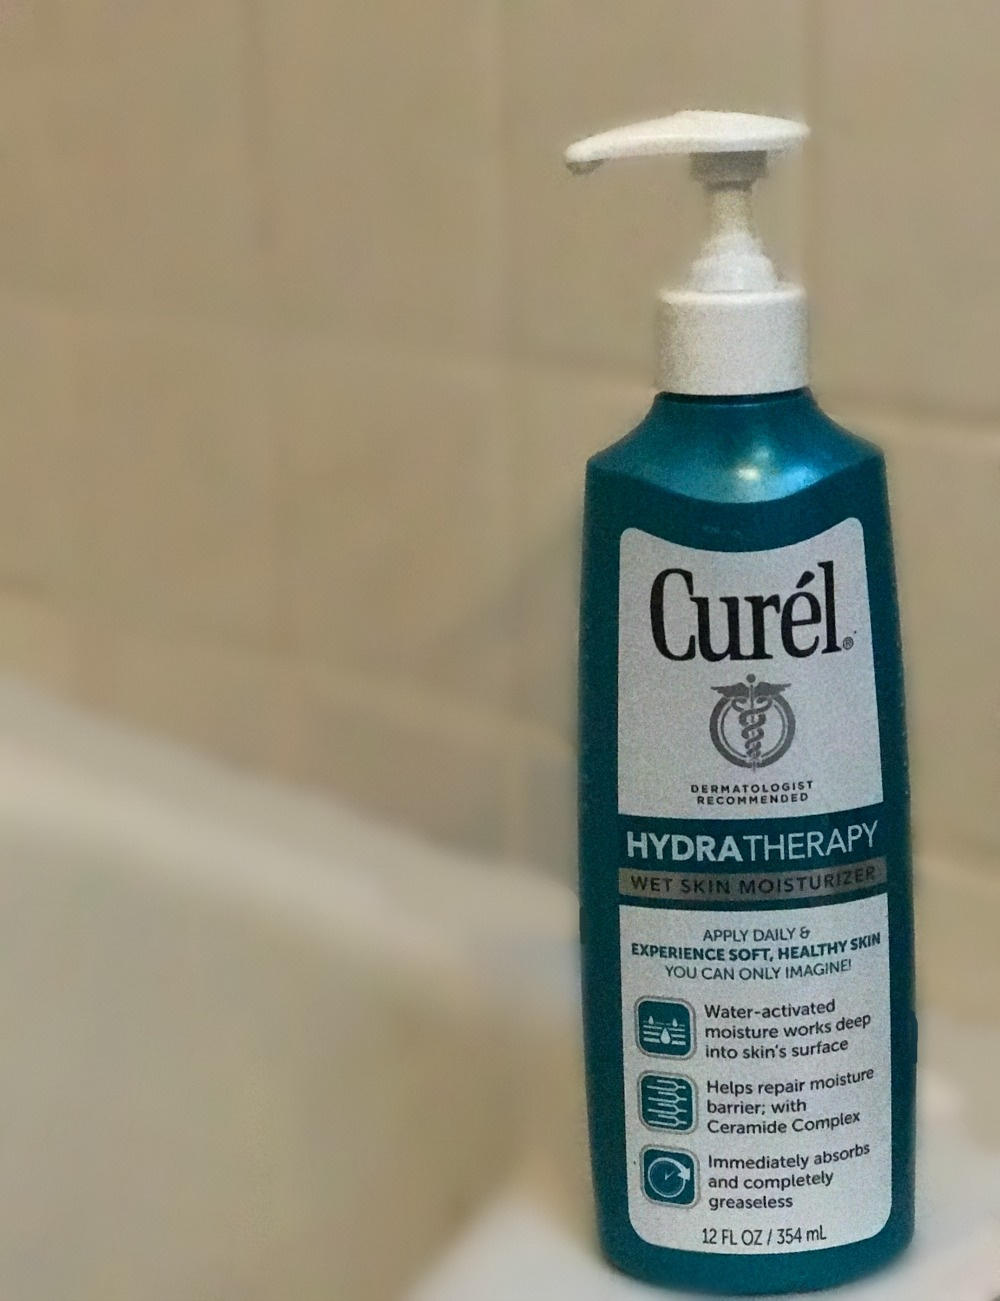 End Dry Skin with daily use of Curel Hydra Therapy Wet Skin Moisturizer